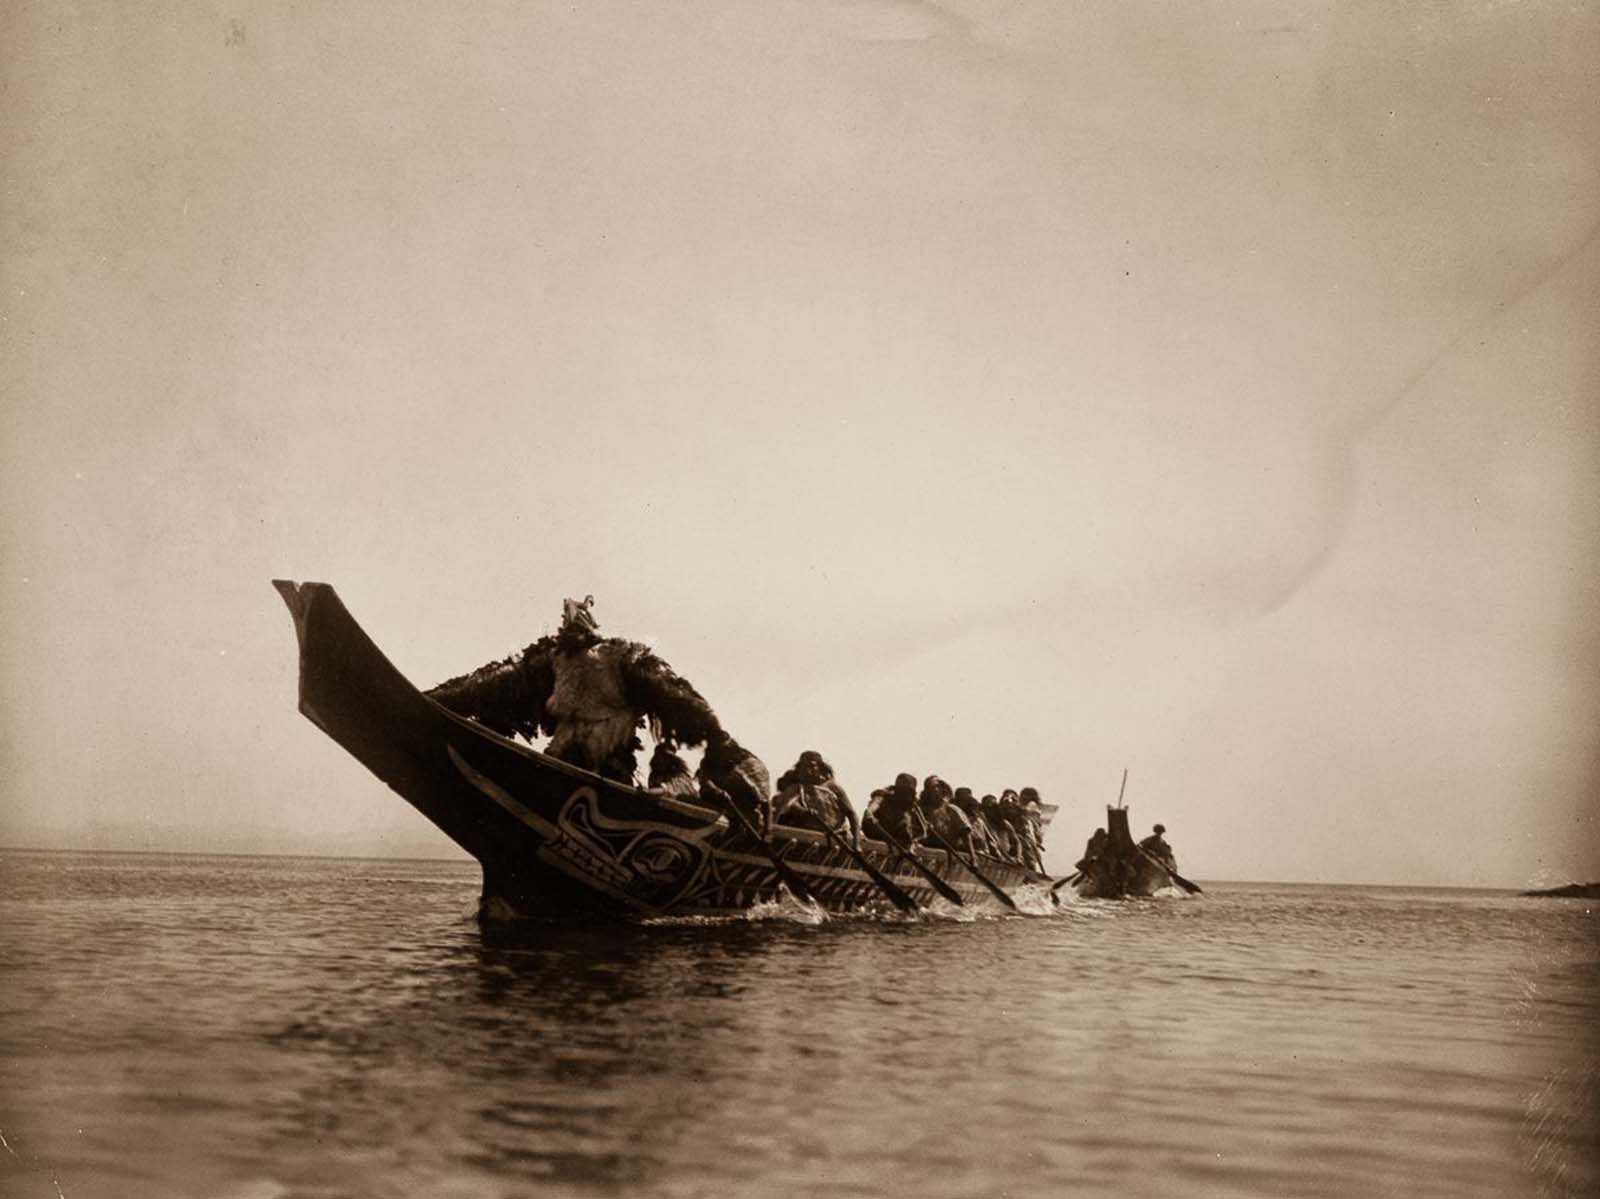 Kwakiutl people in canoes in British Columbia. 1914.